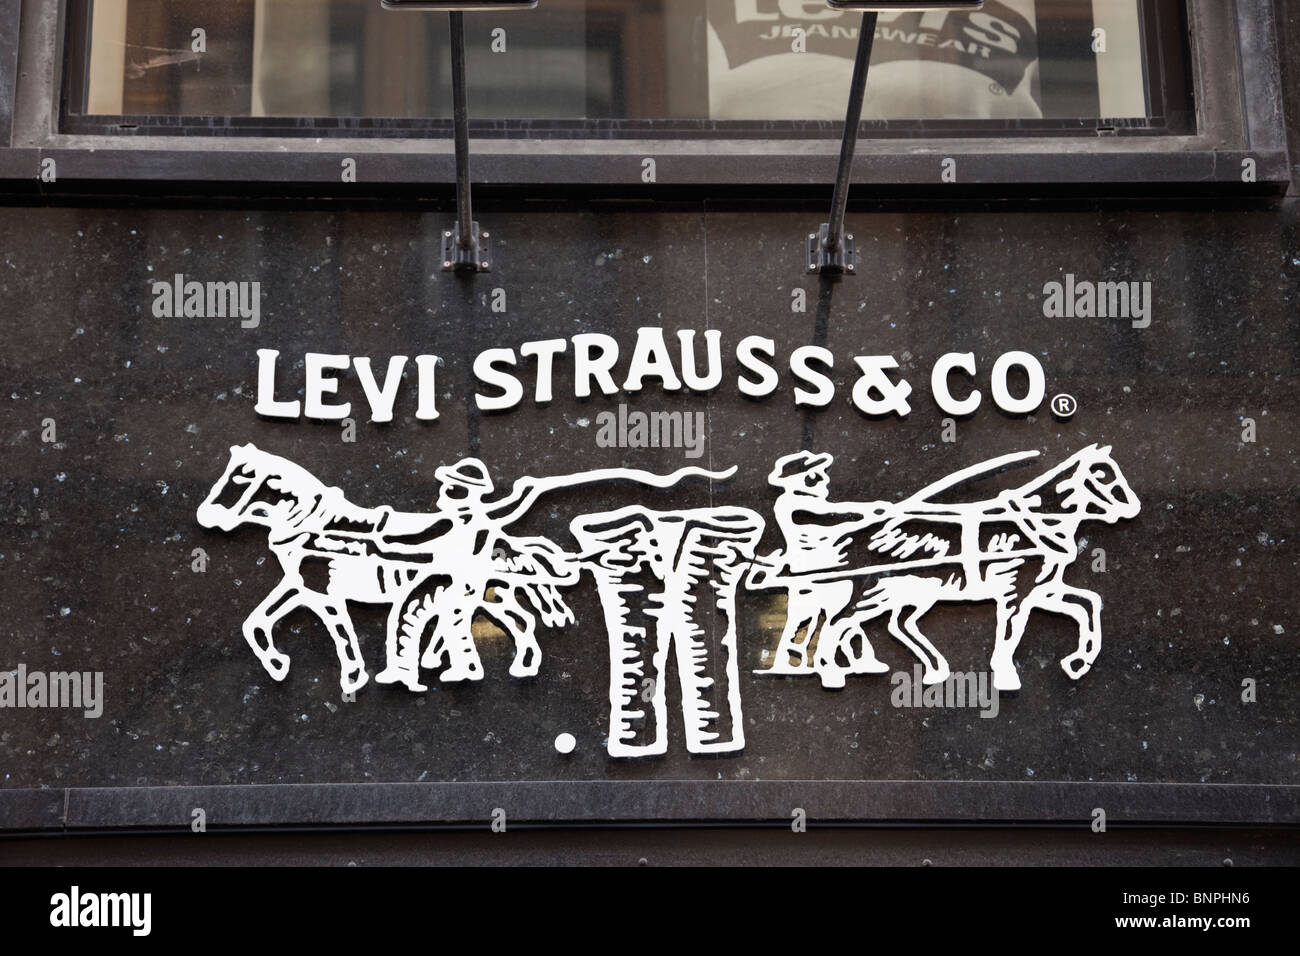 levi strauss co s flirtation with teams The company designs and markets jeans, casual wear and related accessories for men, women and children under the levi's®, dockers®, signature by levi strauss & co™ and denizen® brands.